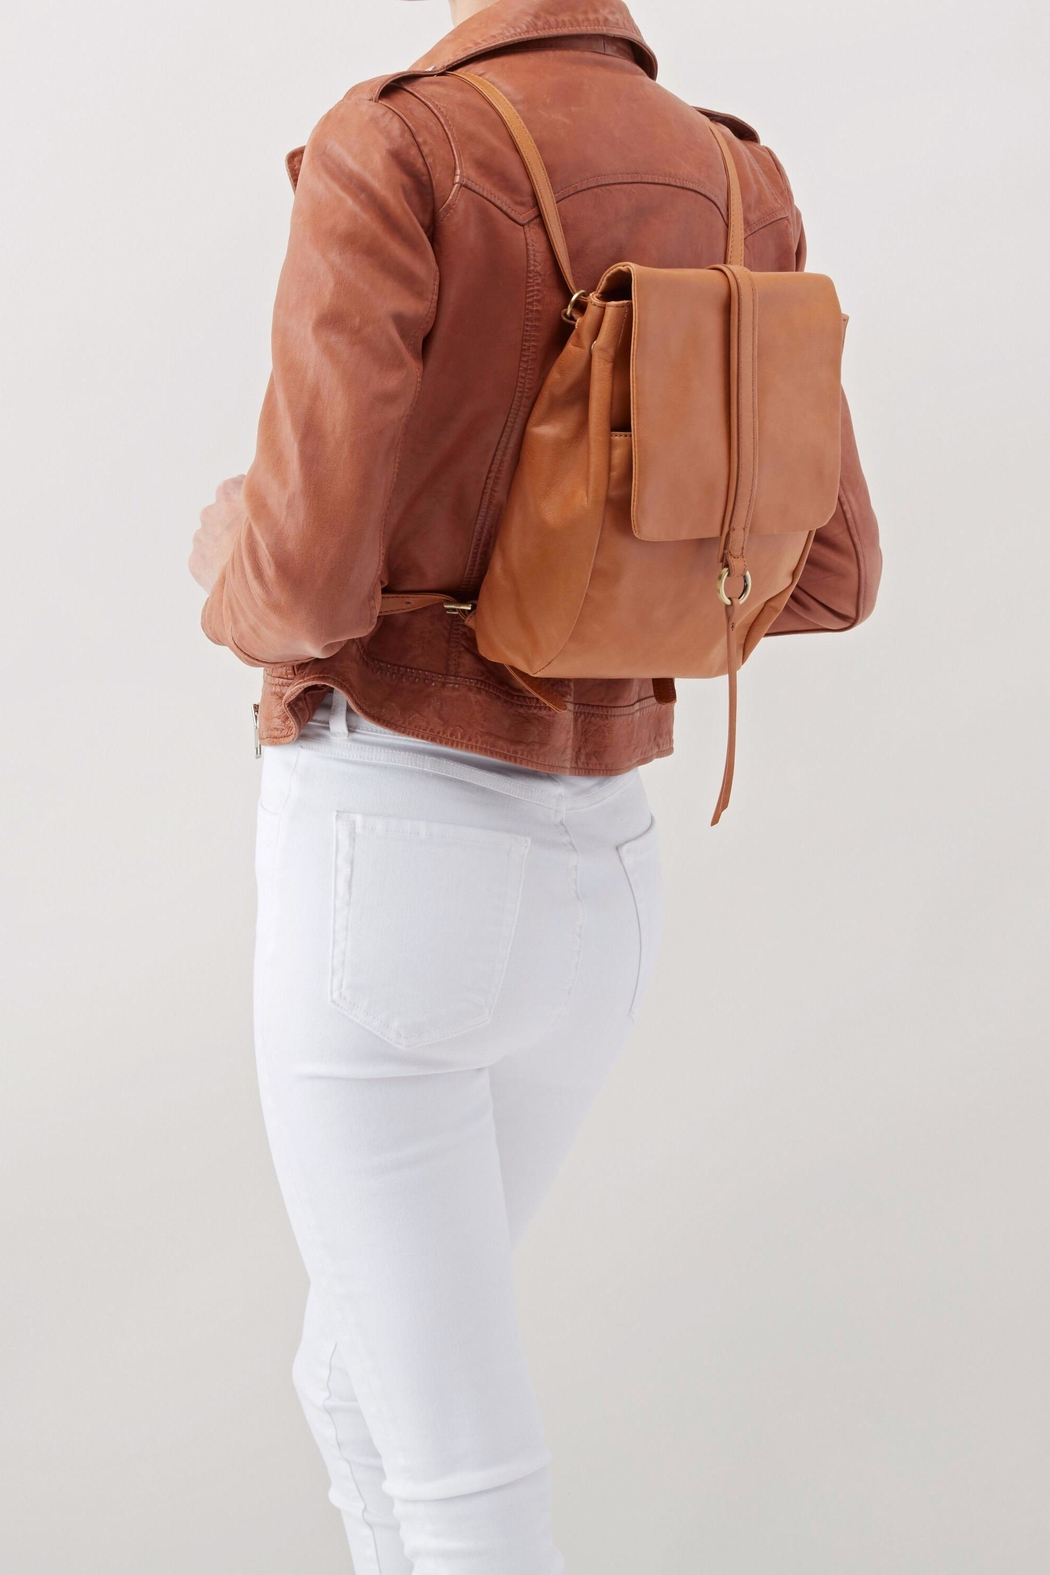 Hobo Convertible Backpack/purse - Main Image